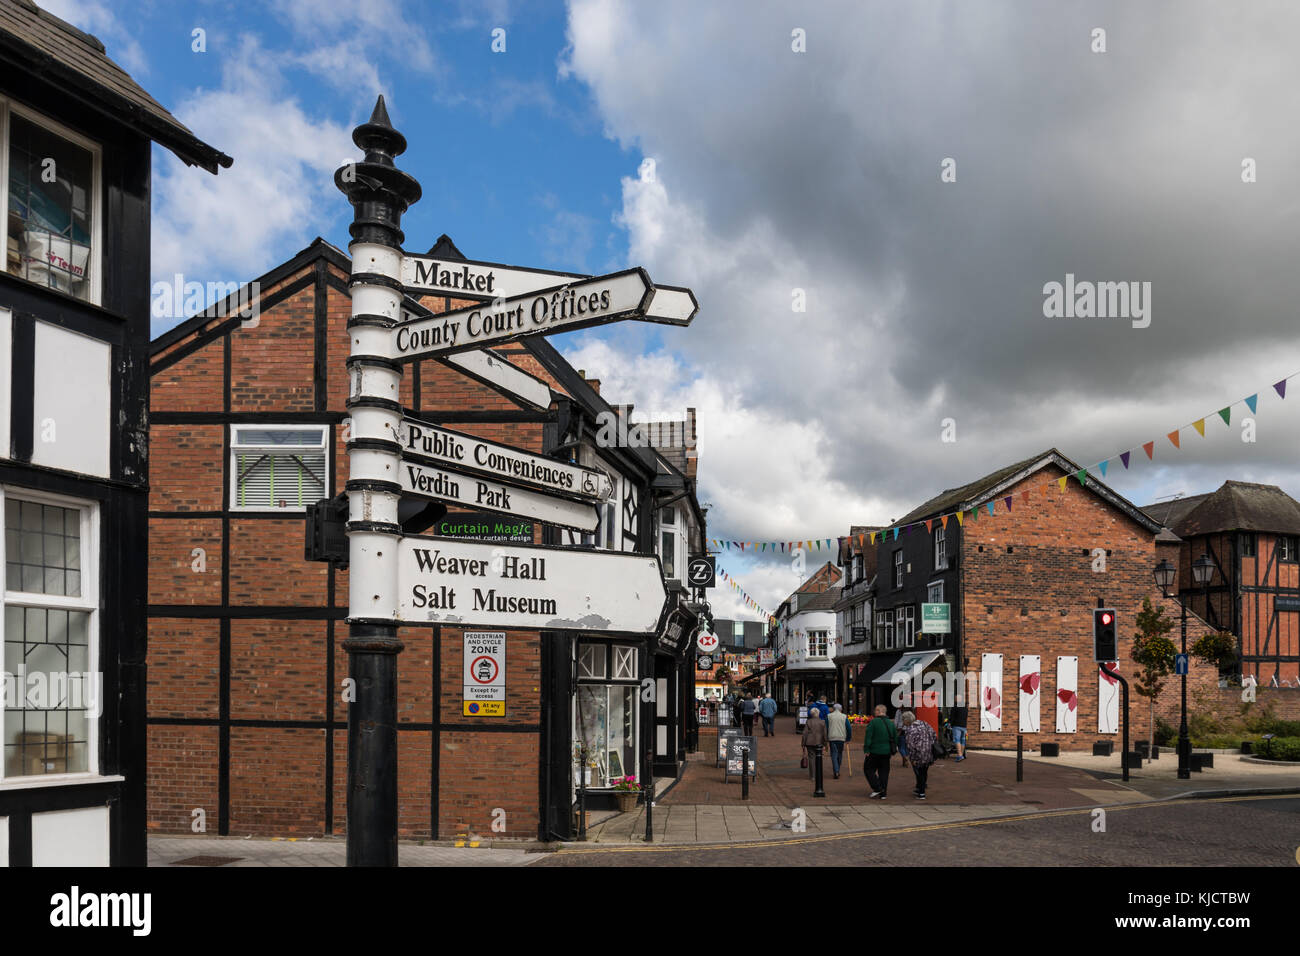 Pedestrian signpost at High Street showing directions to the points of interest in Northwich, Cheshire, UK - Stock Image